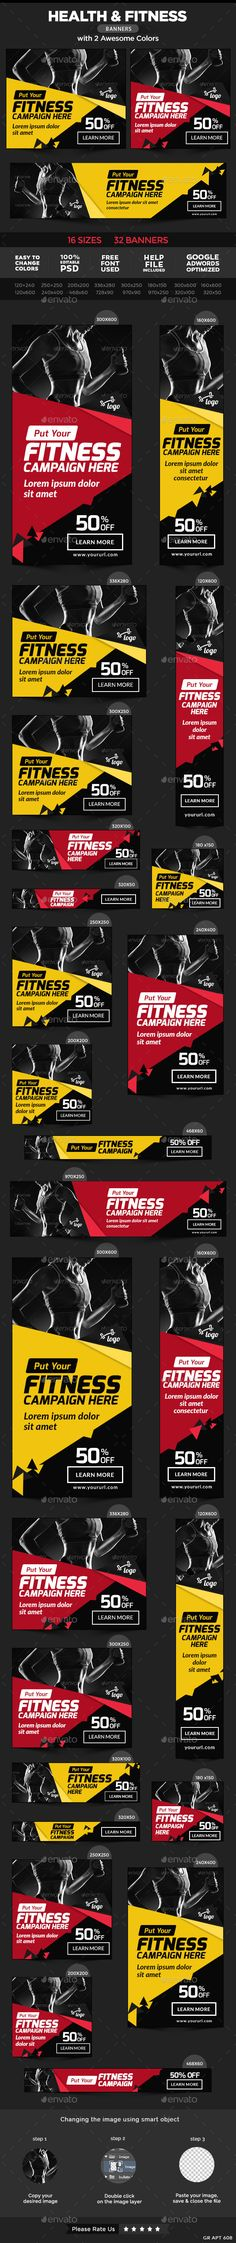 Health and Fitness Banners Template #design Download: http://graphicriver.net/item/health-and-fitness-banners/11404379?ref=ksioks